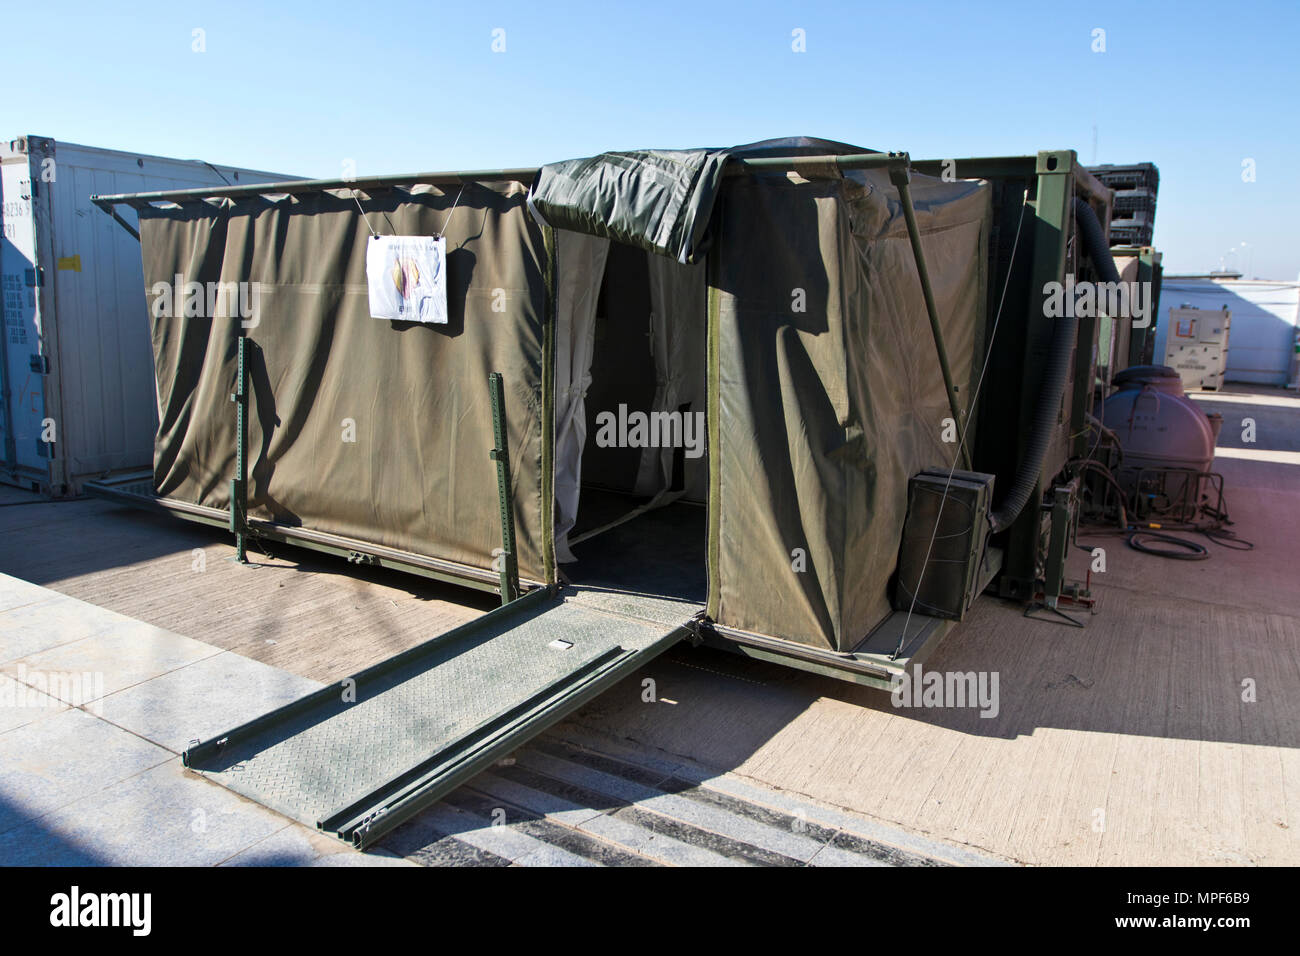 The Mobile Integrated Remains Collections System (MIRCS) is a self-contained shelter with four main areas; receiving and processing area, refrigerated storage area for remains, administrative area and storage for operational supplies. (U.S. Army photo by Staff Sgt. Dalton Smith) - Stock Image